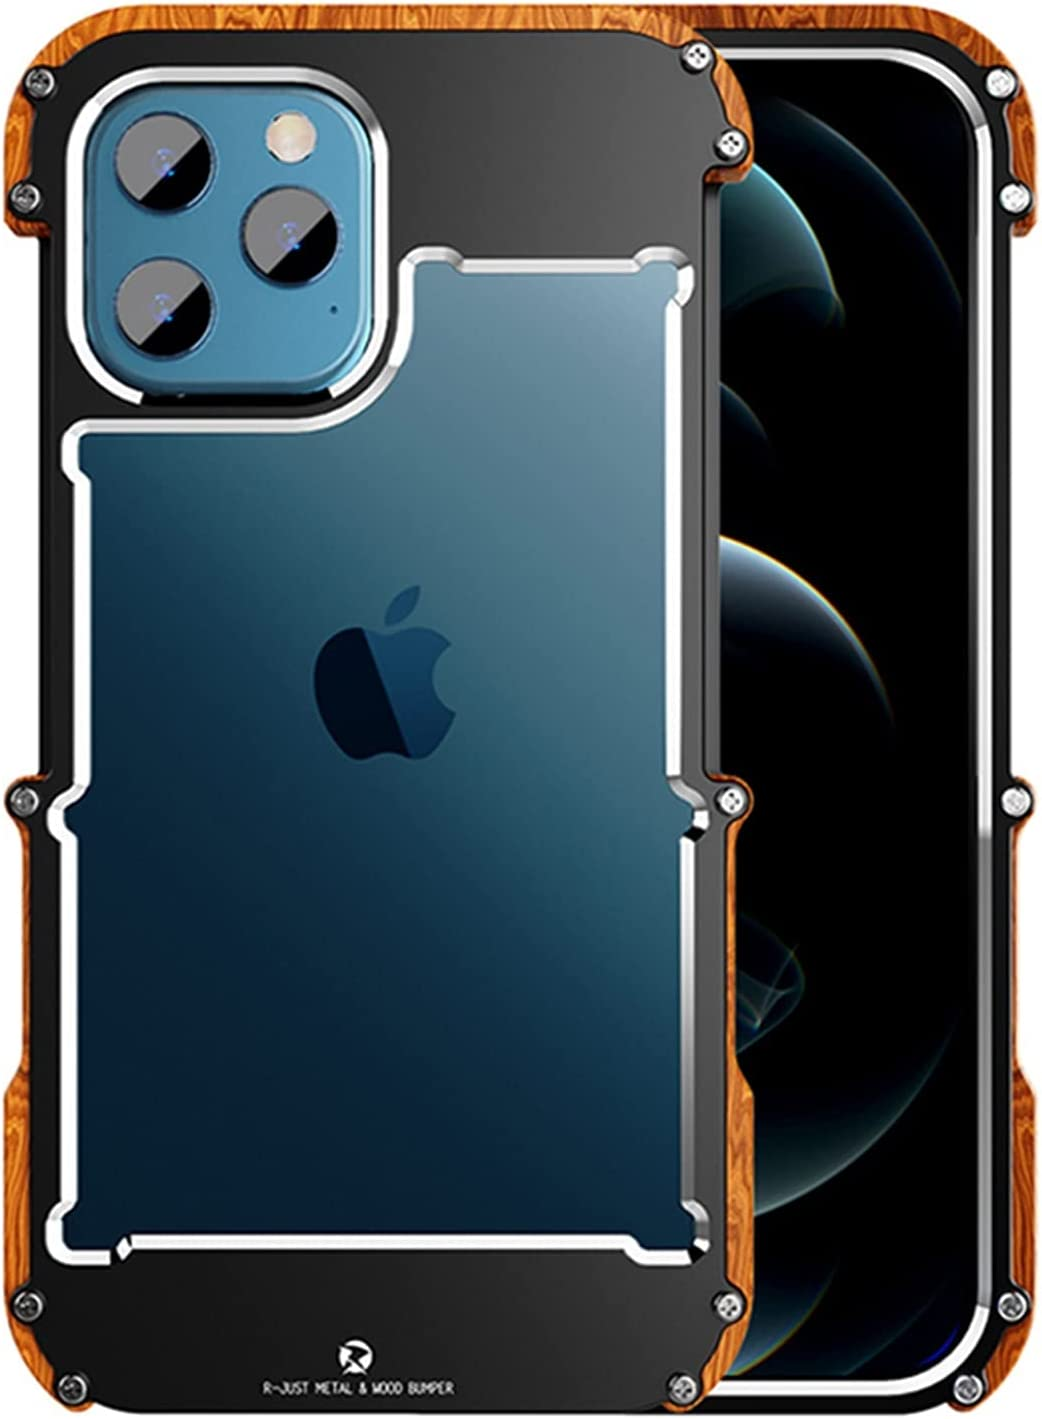 LRJBFC for iPhone trend rank 12 Pro Max Mini 11 6 S 8 2020 6s 7 Now on sale X Pl